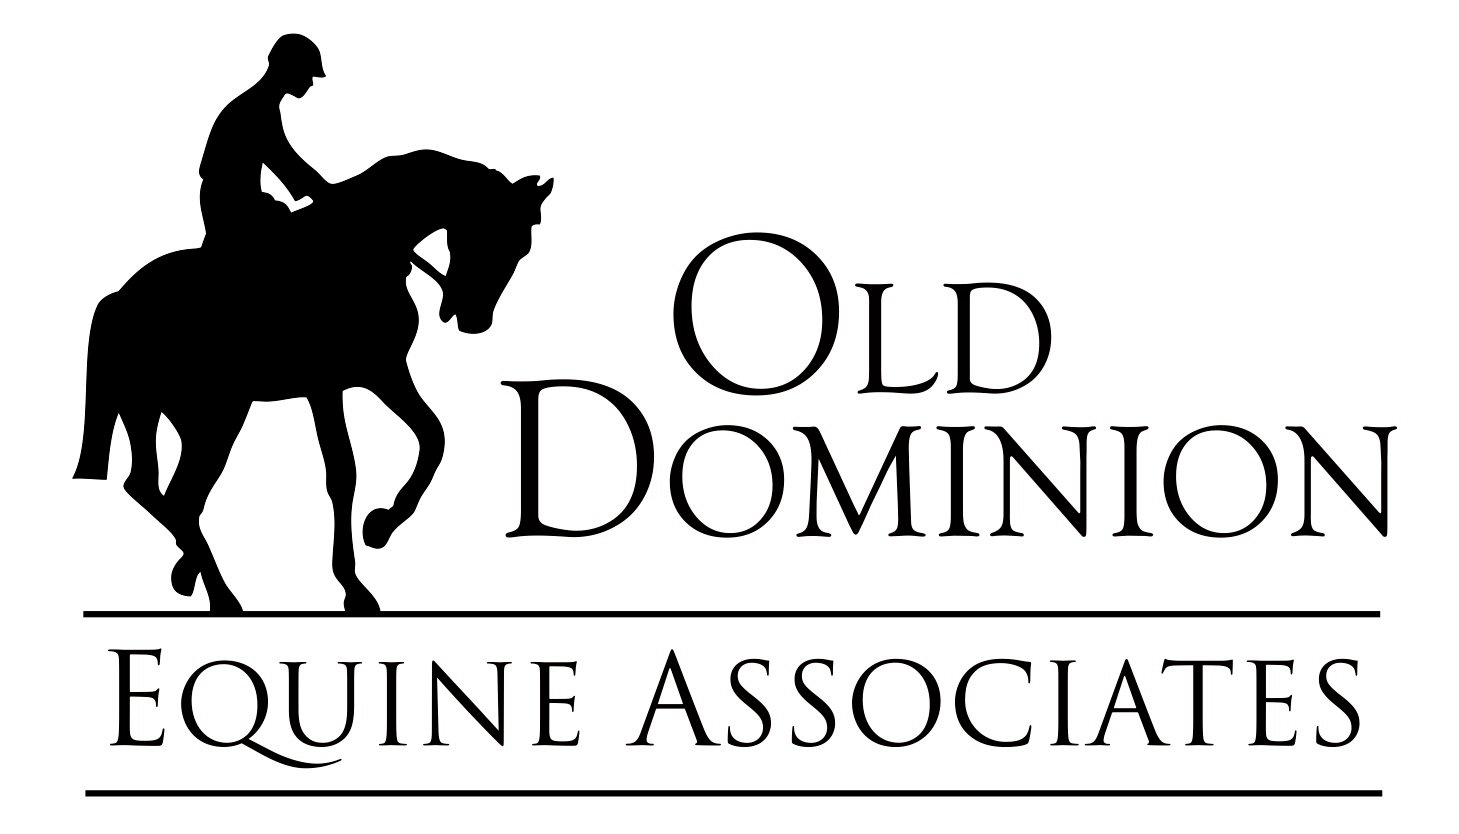 Old Dominion Equine Associates